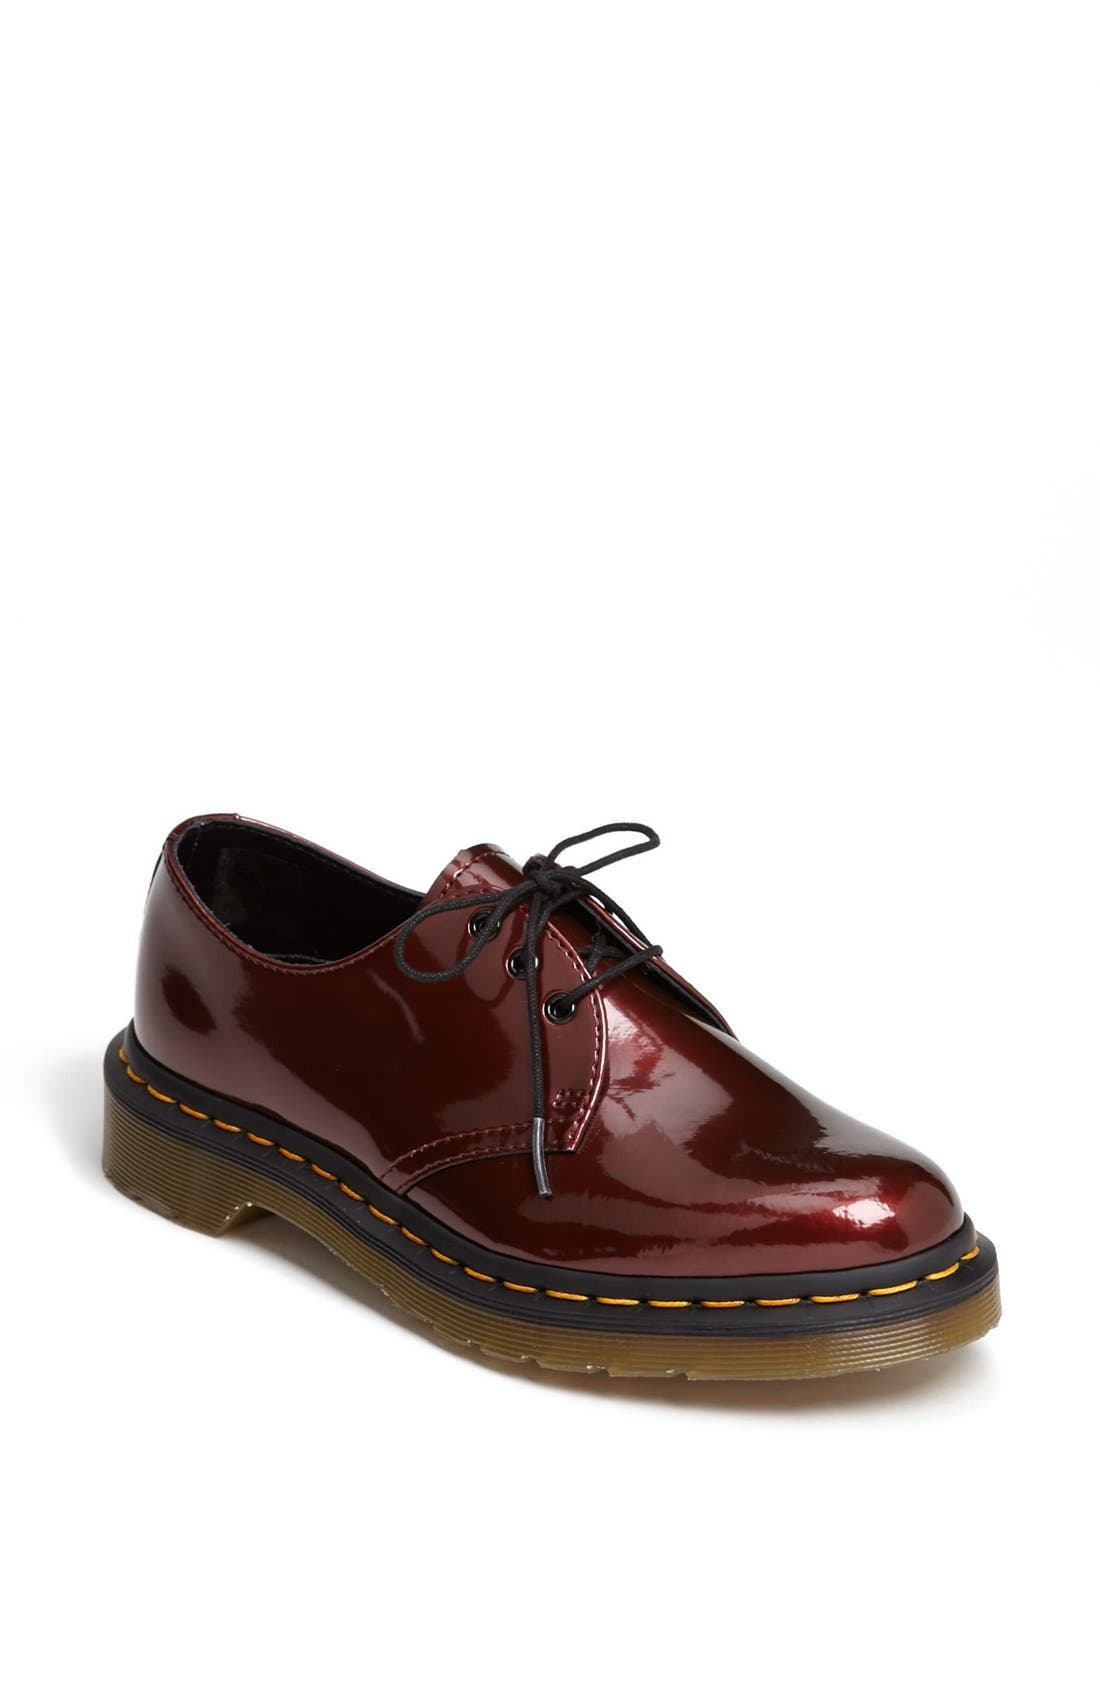 Alternate Image 1 Selected - Dr. Martens '1461 W' Oxford